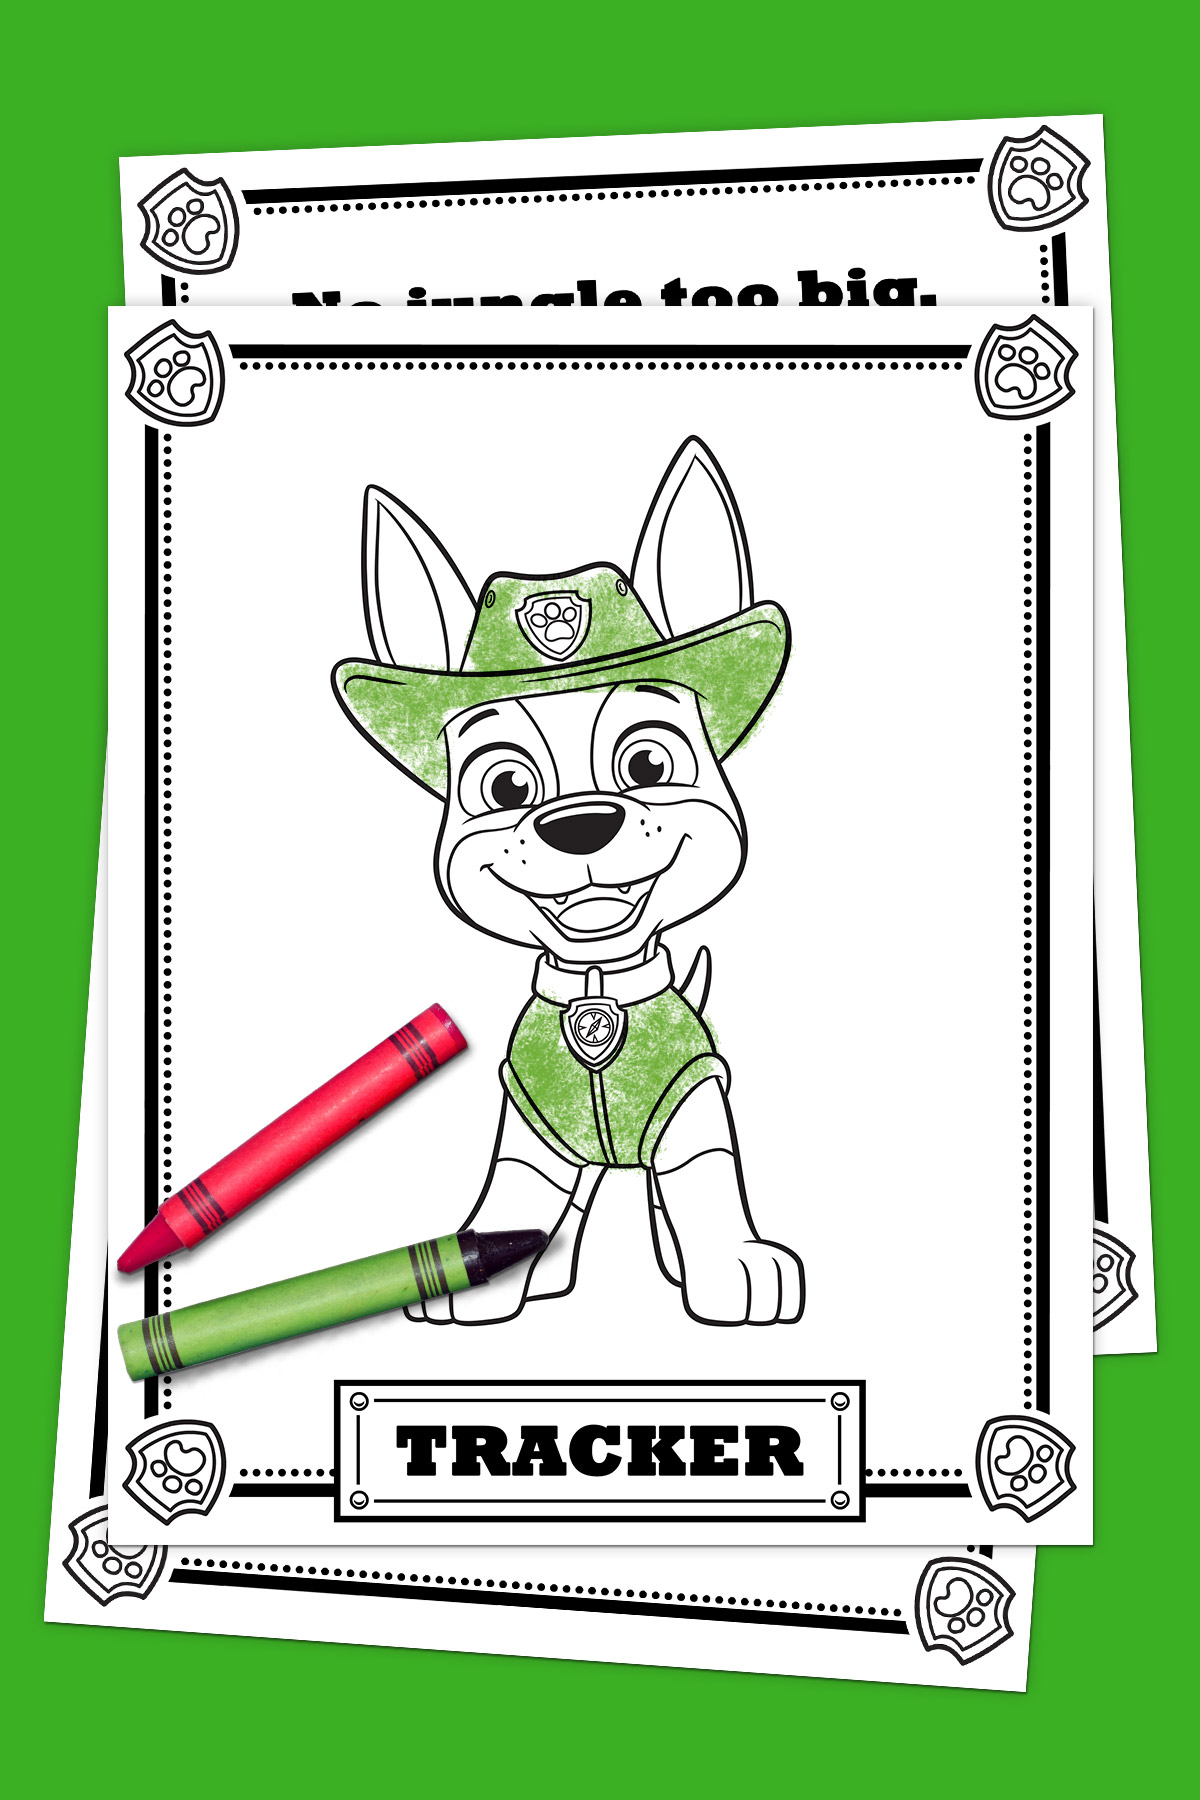 PAW Patrol Tracker Coloring Pack | Nickelodeon Parents